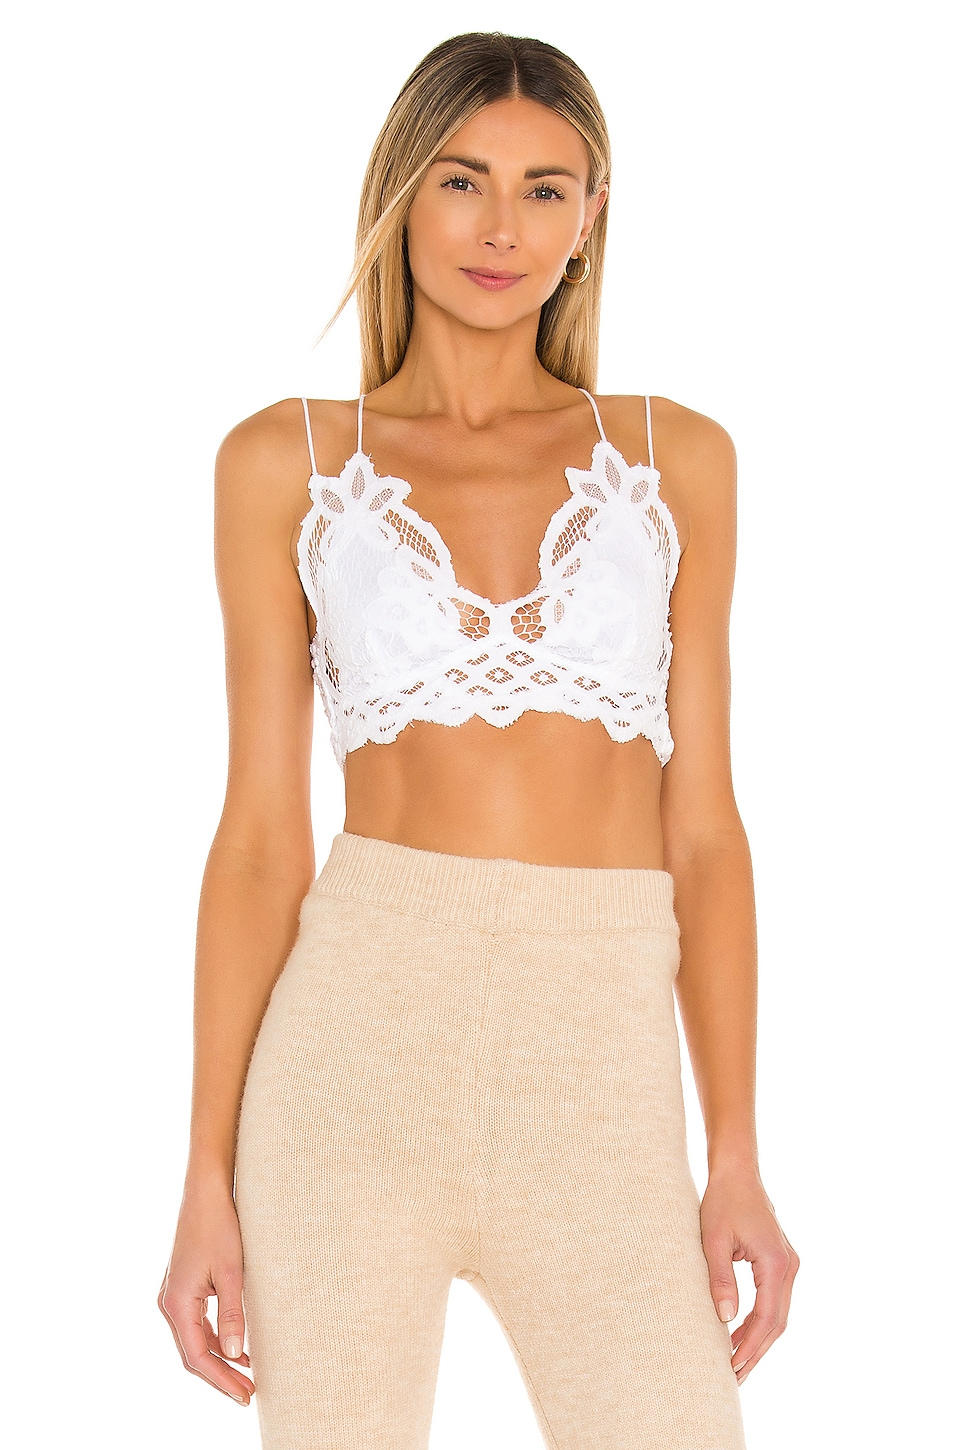 Free People Adella Bralette in White